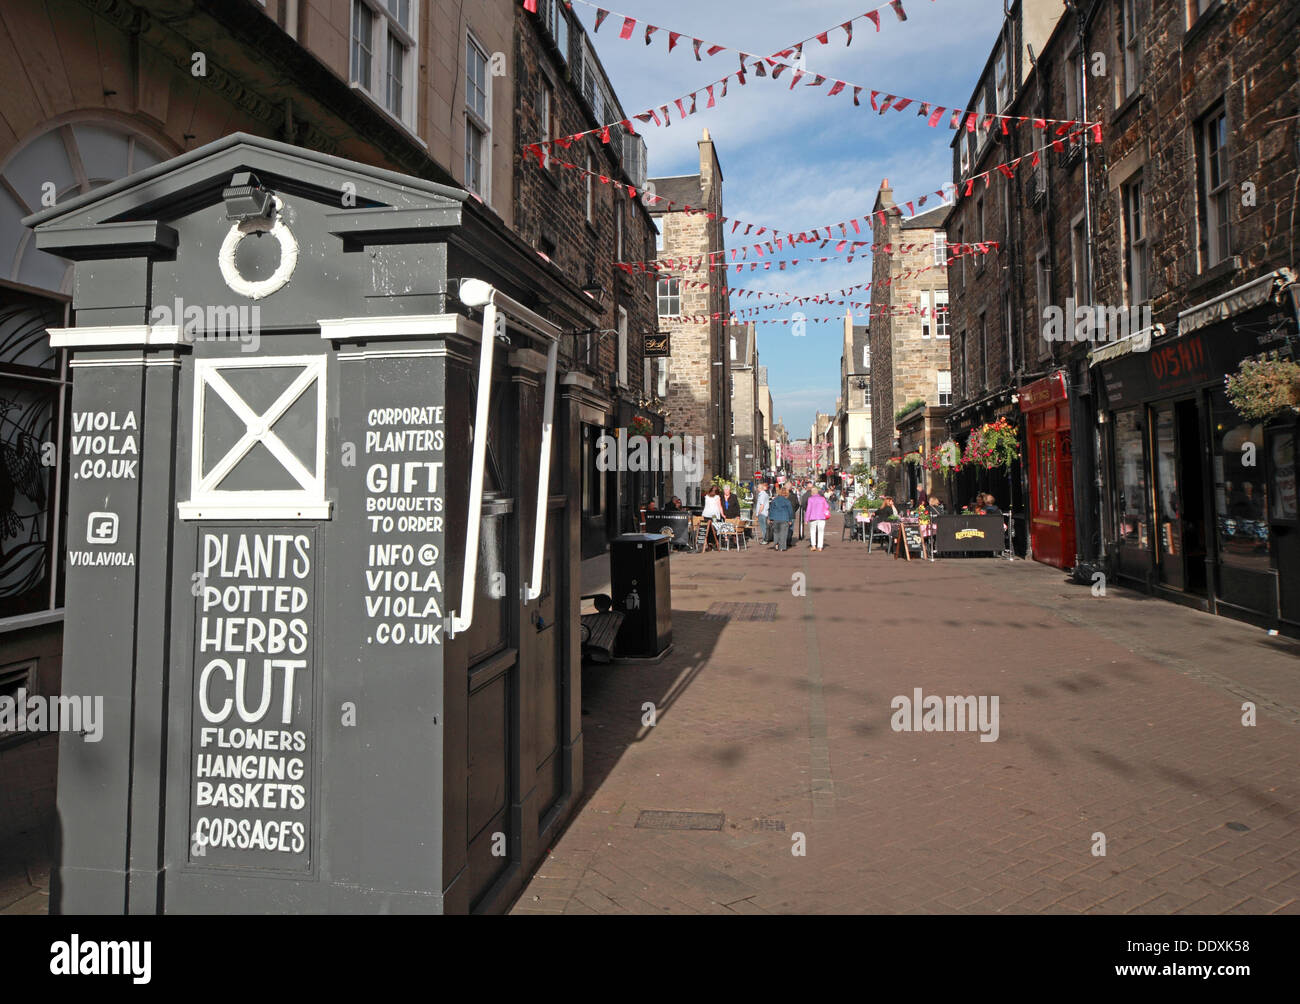 capital,city,centre,pedestrianised,center,pub,bar,pubs,bars,bunting,summer,drinking,eating,dining,out,eat,party,busy,with,people,gift,cut,herbs,old,Tardis,Police,Box,Dr Who,Police Box,GoTonySmith,@HotpixUK,Buy Pictures of,Buy Images Of,Images of,Stock Images